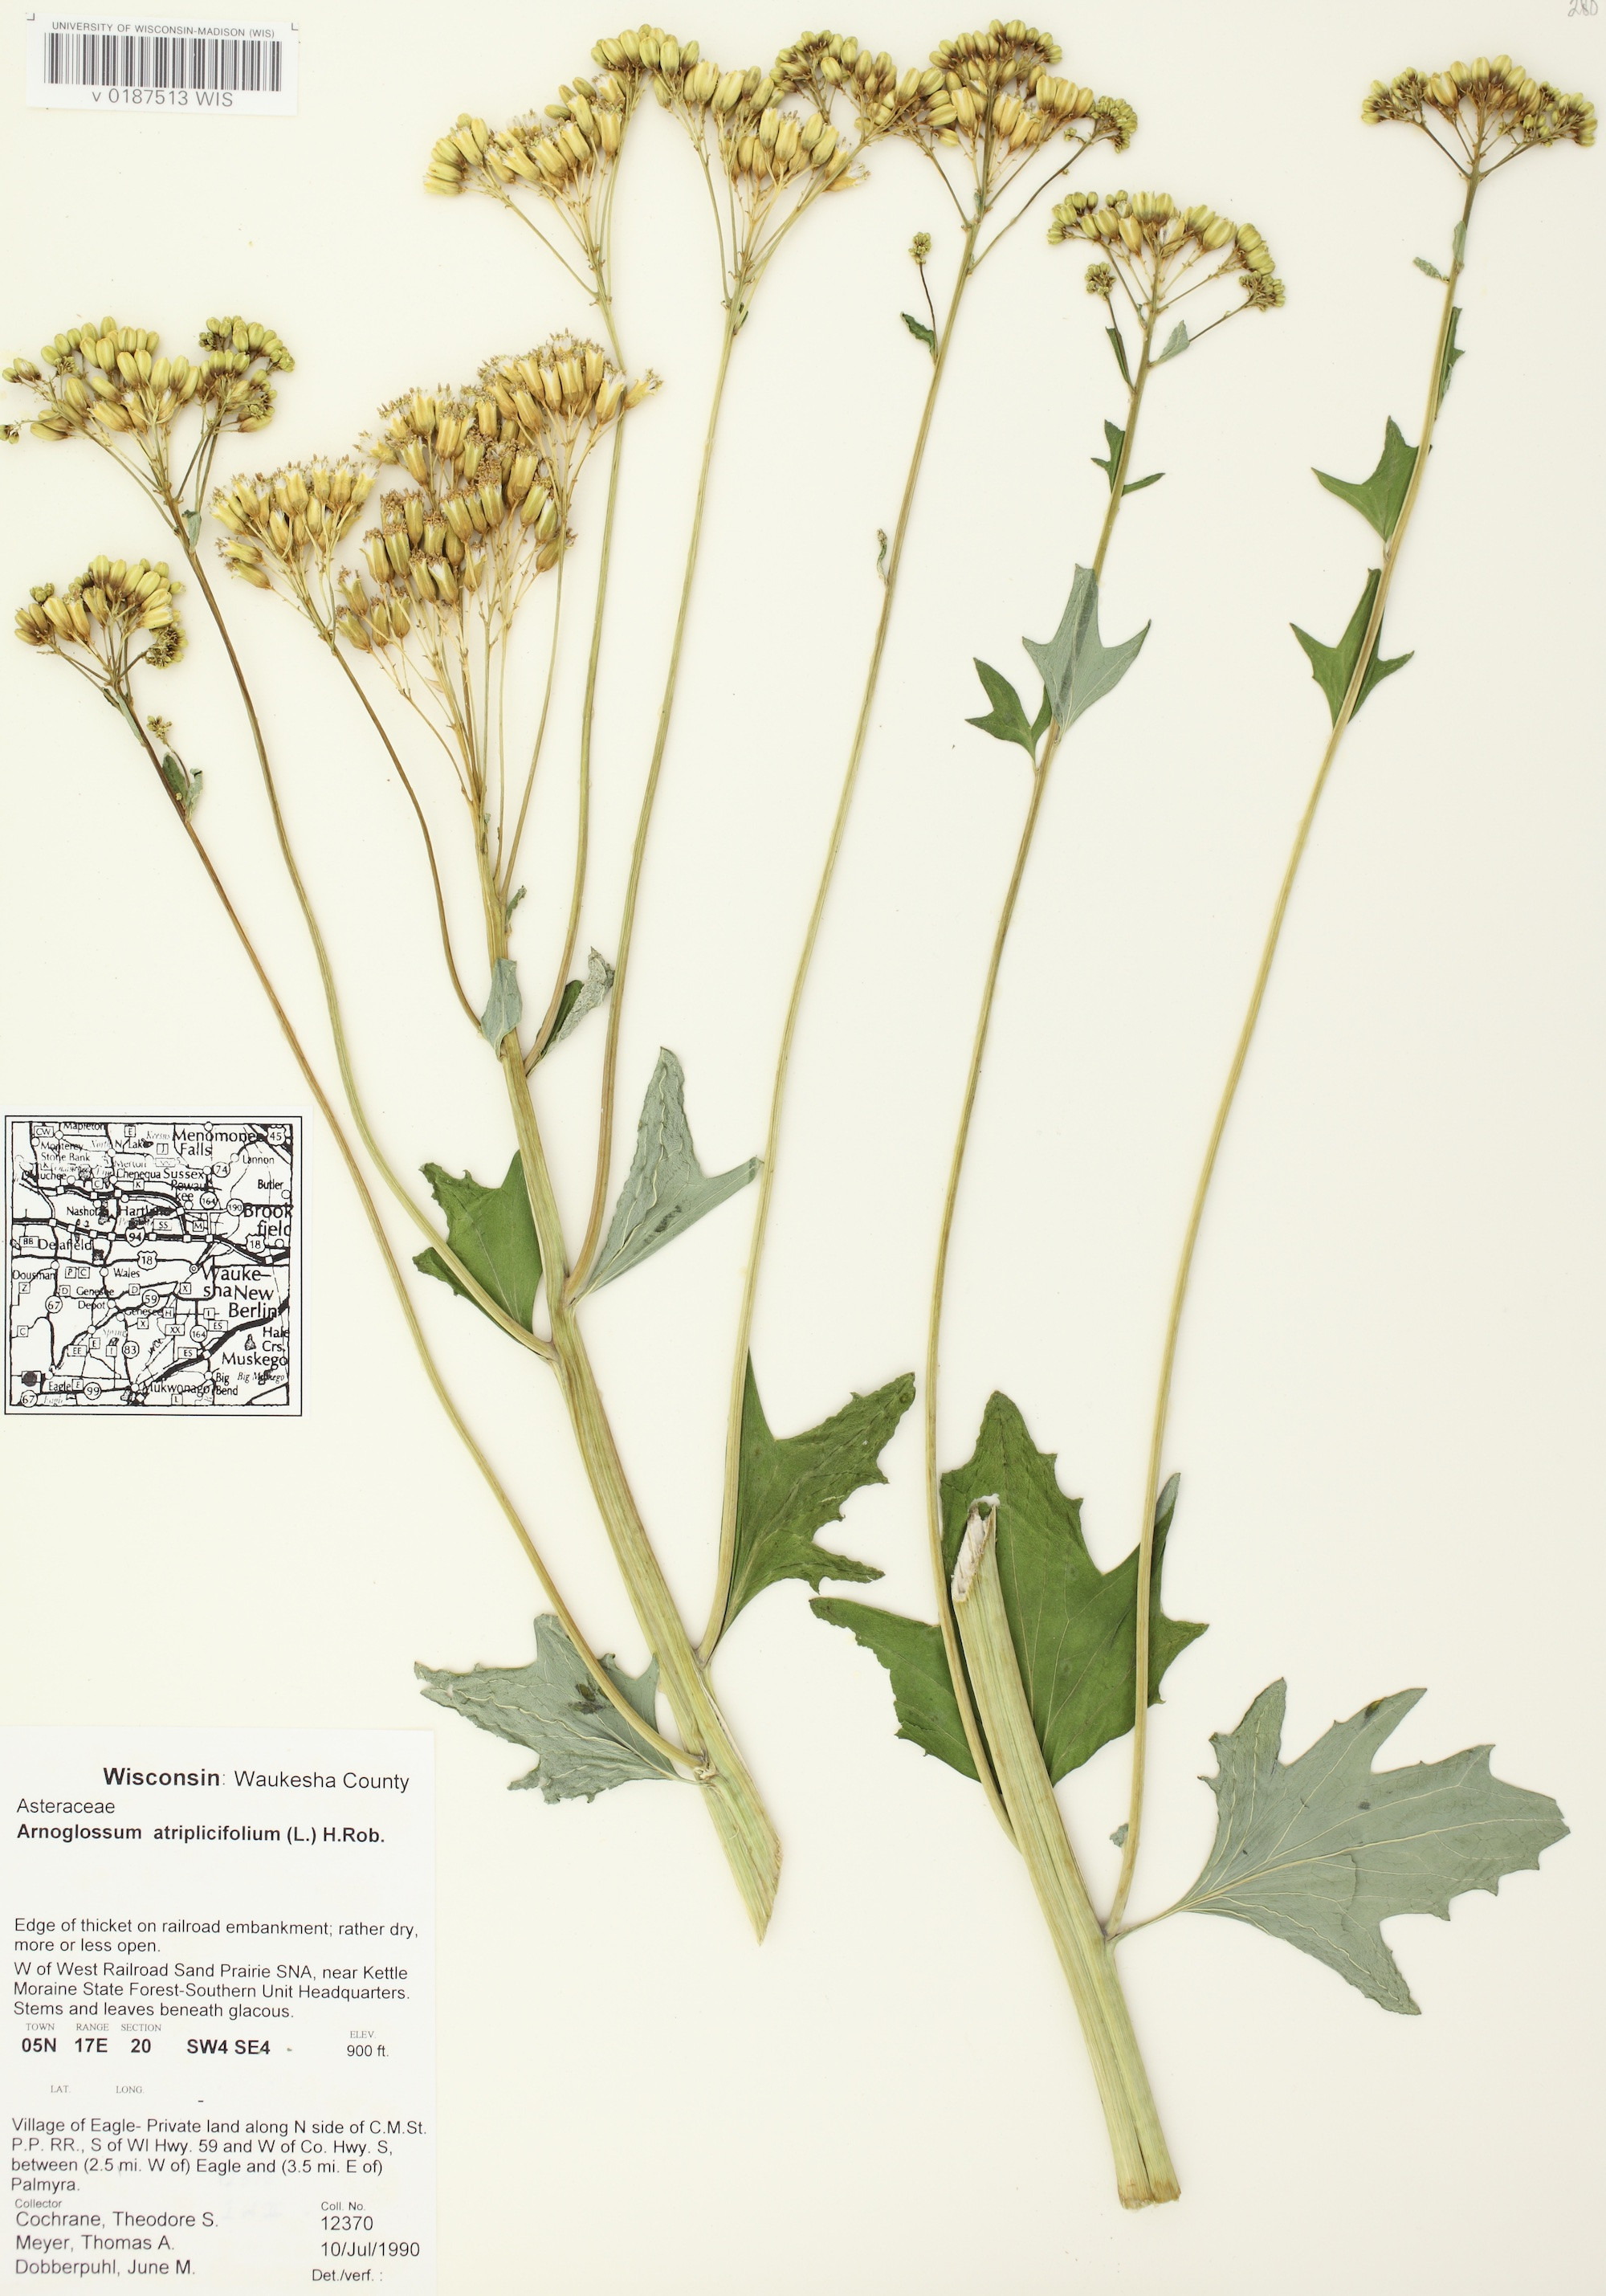 Pale Indian Plantain specimen collected in Waukesha County on July 10, 1990.